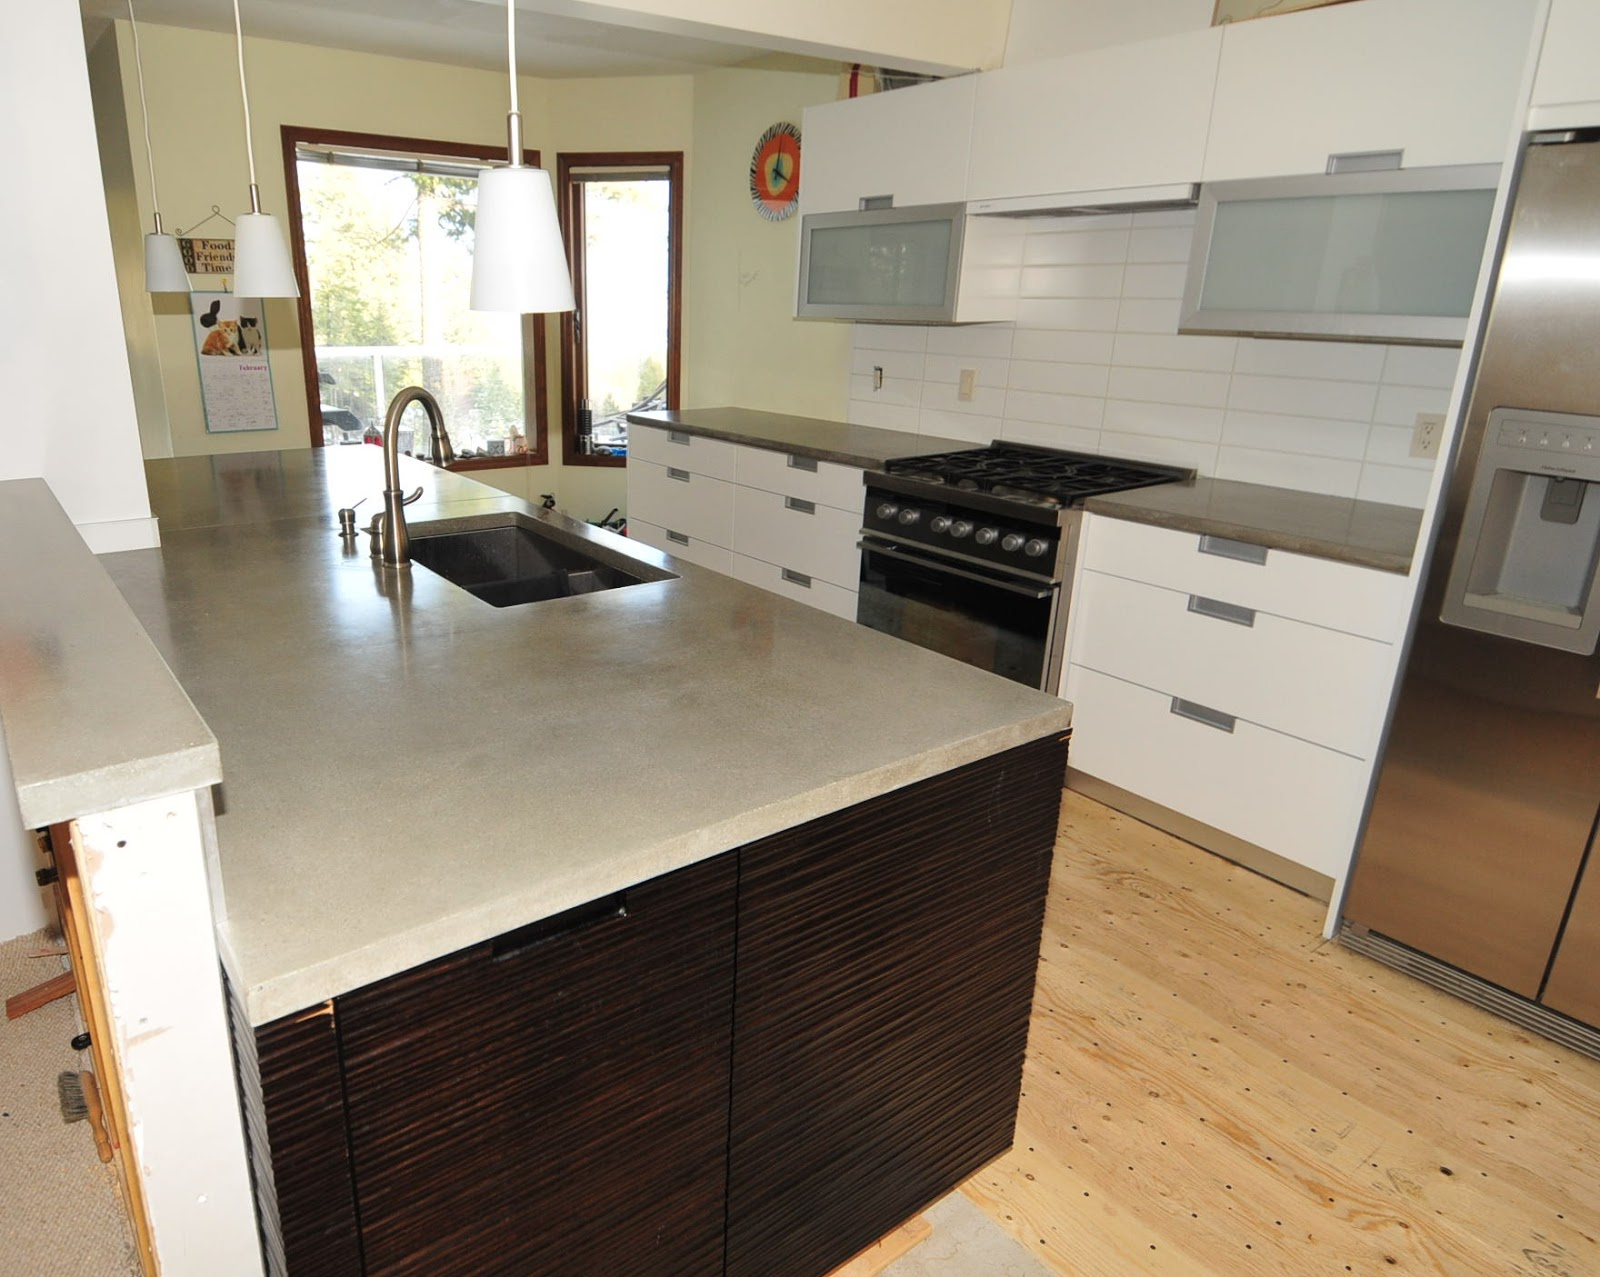 Mode Concrete Ultra Chic And Modern Concrete Kitchen Countertops Made In The Okanagan